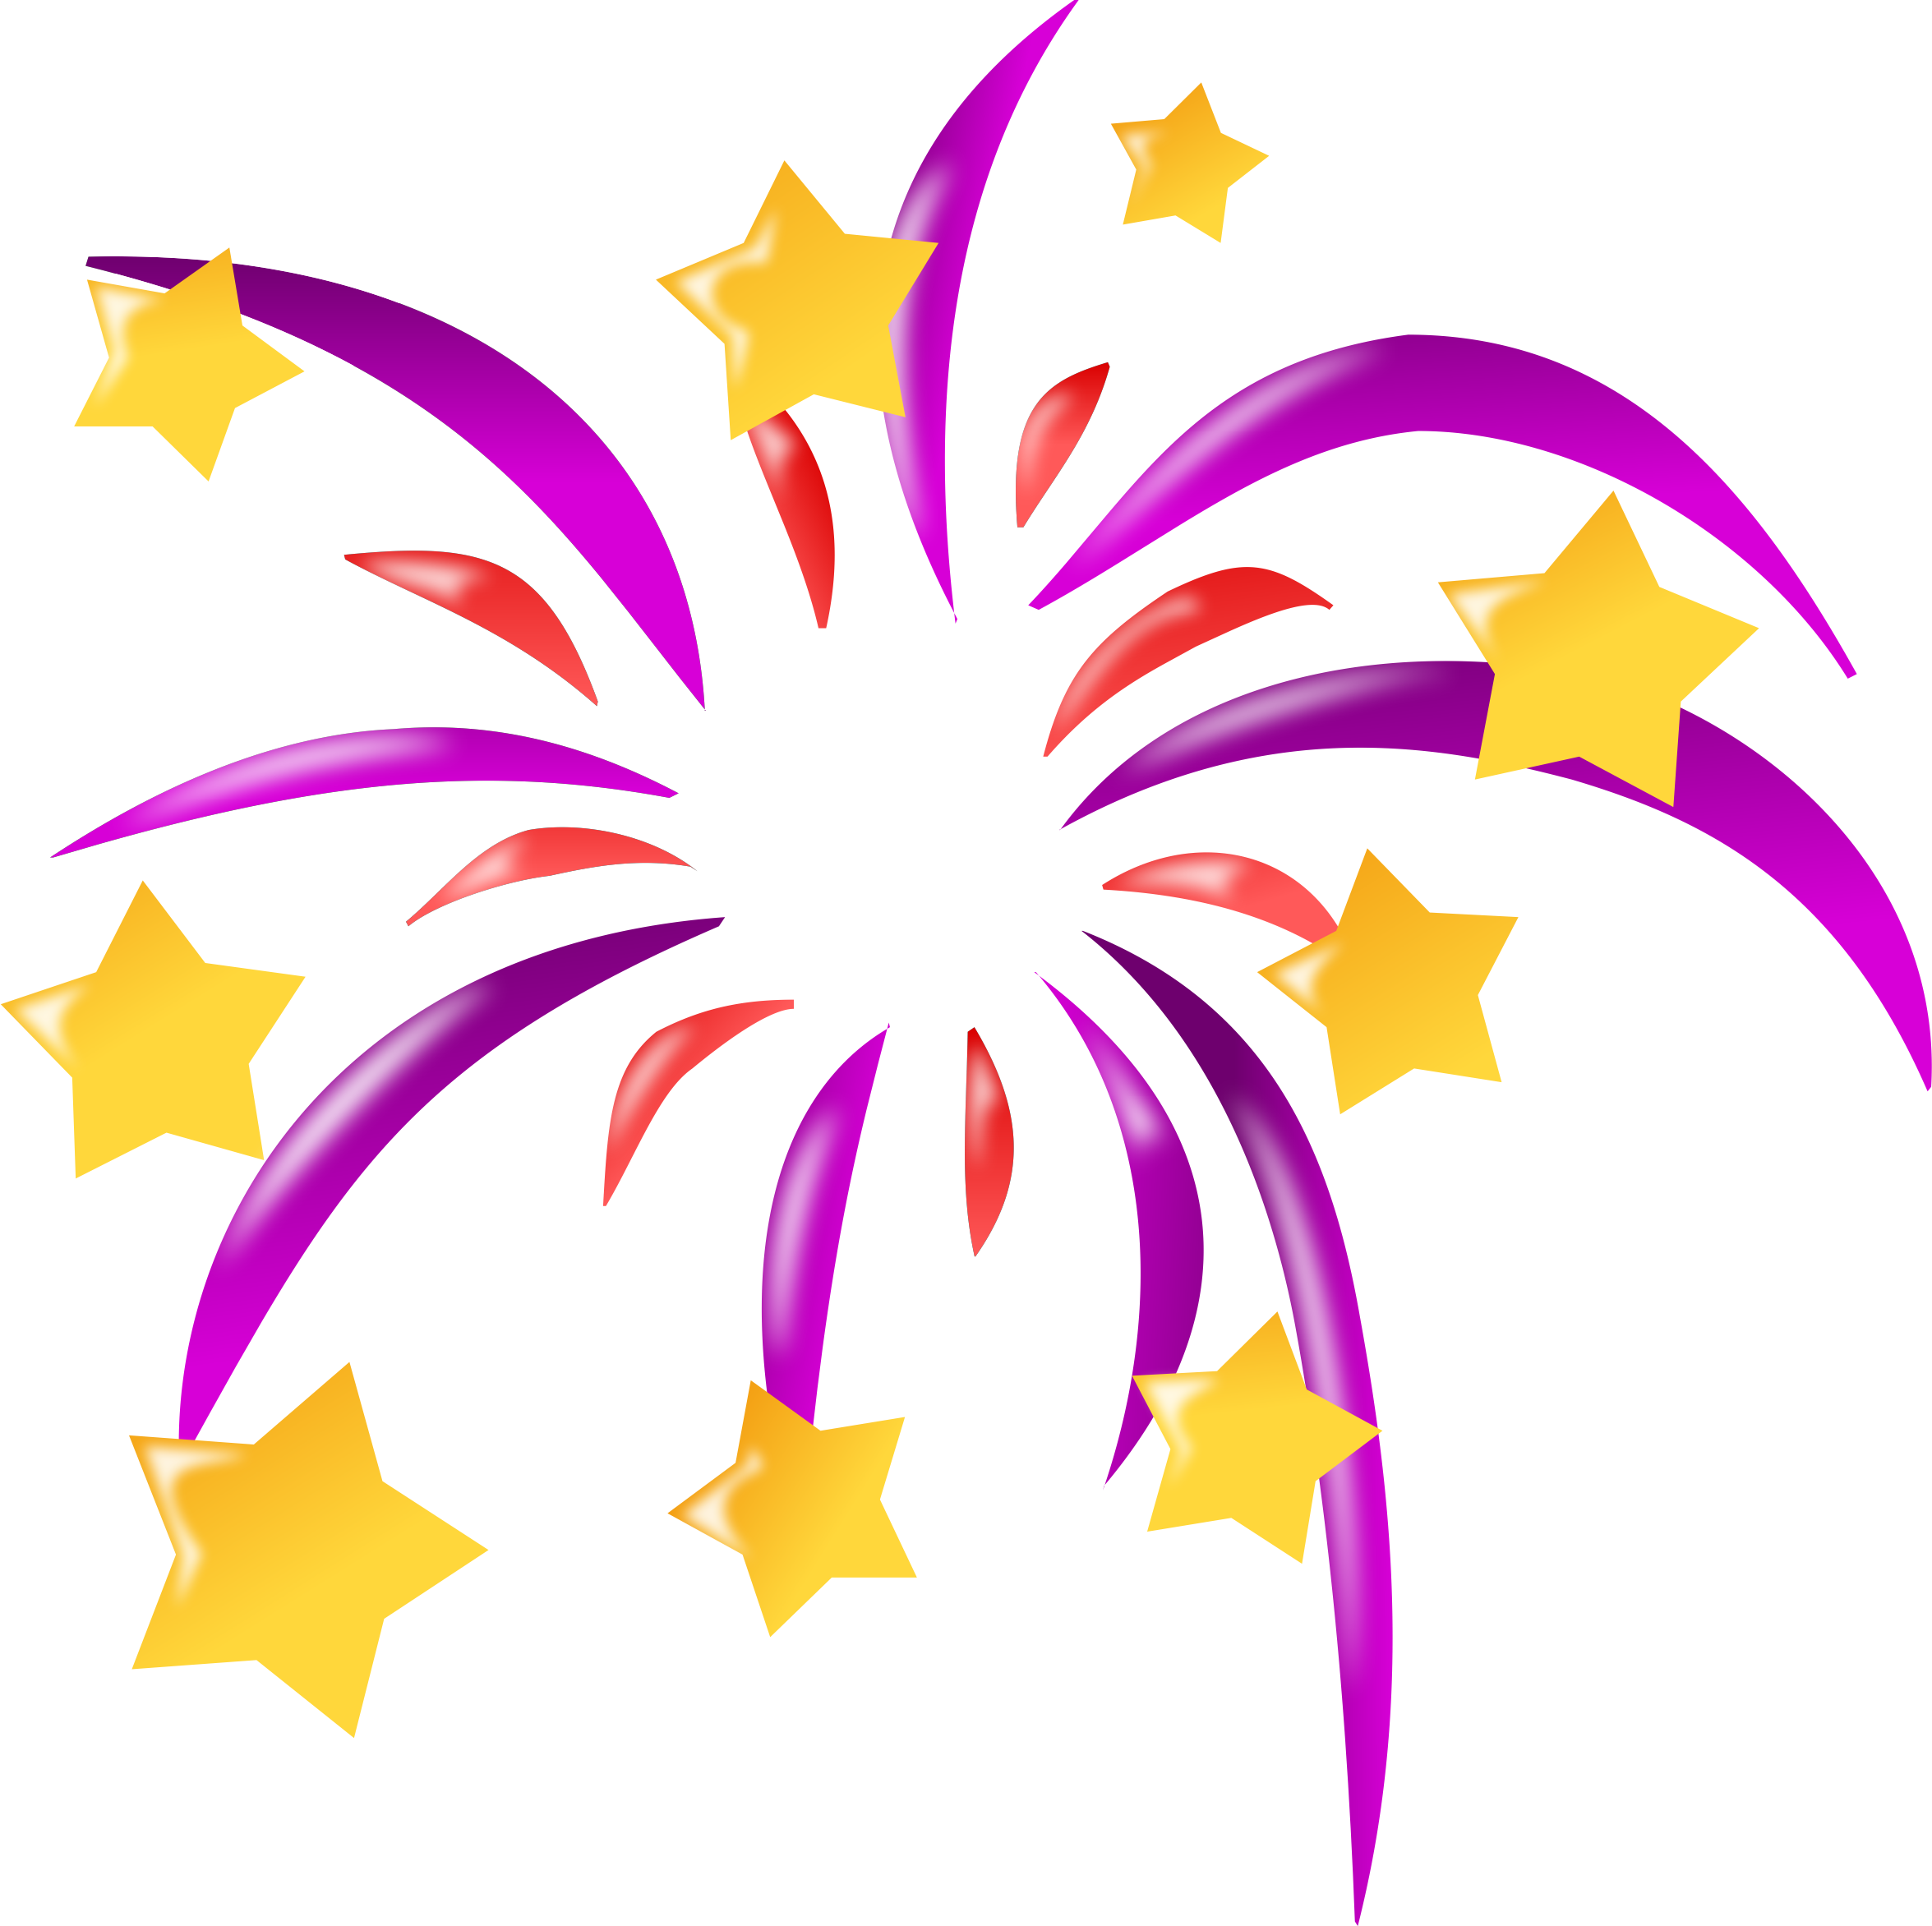 New years clip art png. Clipart at getdrawings com